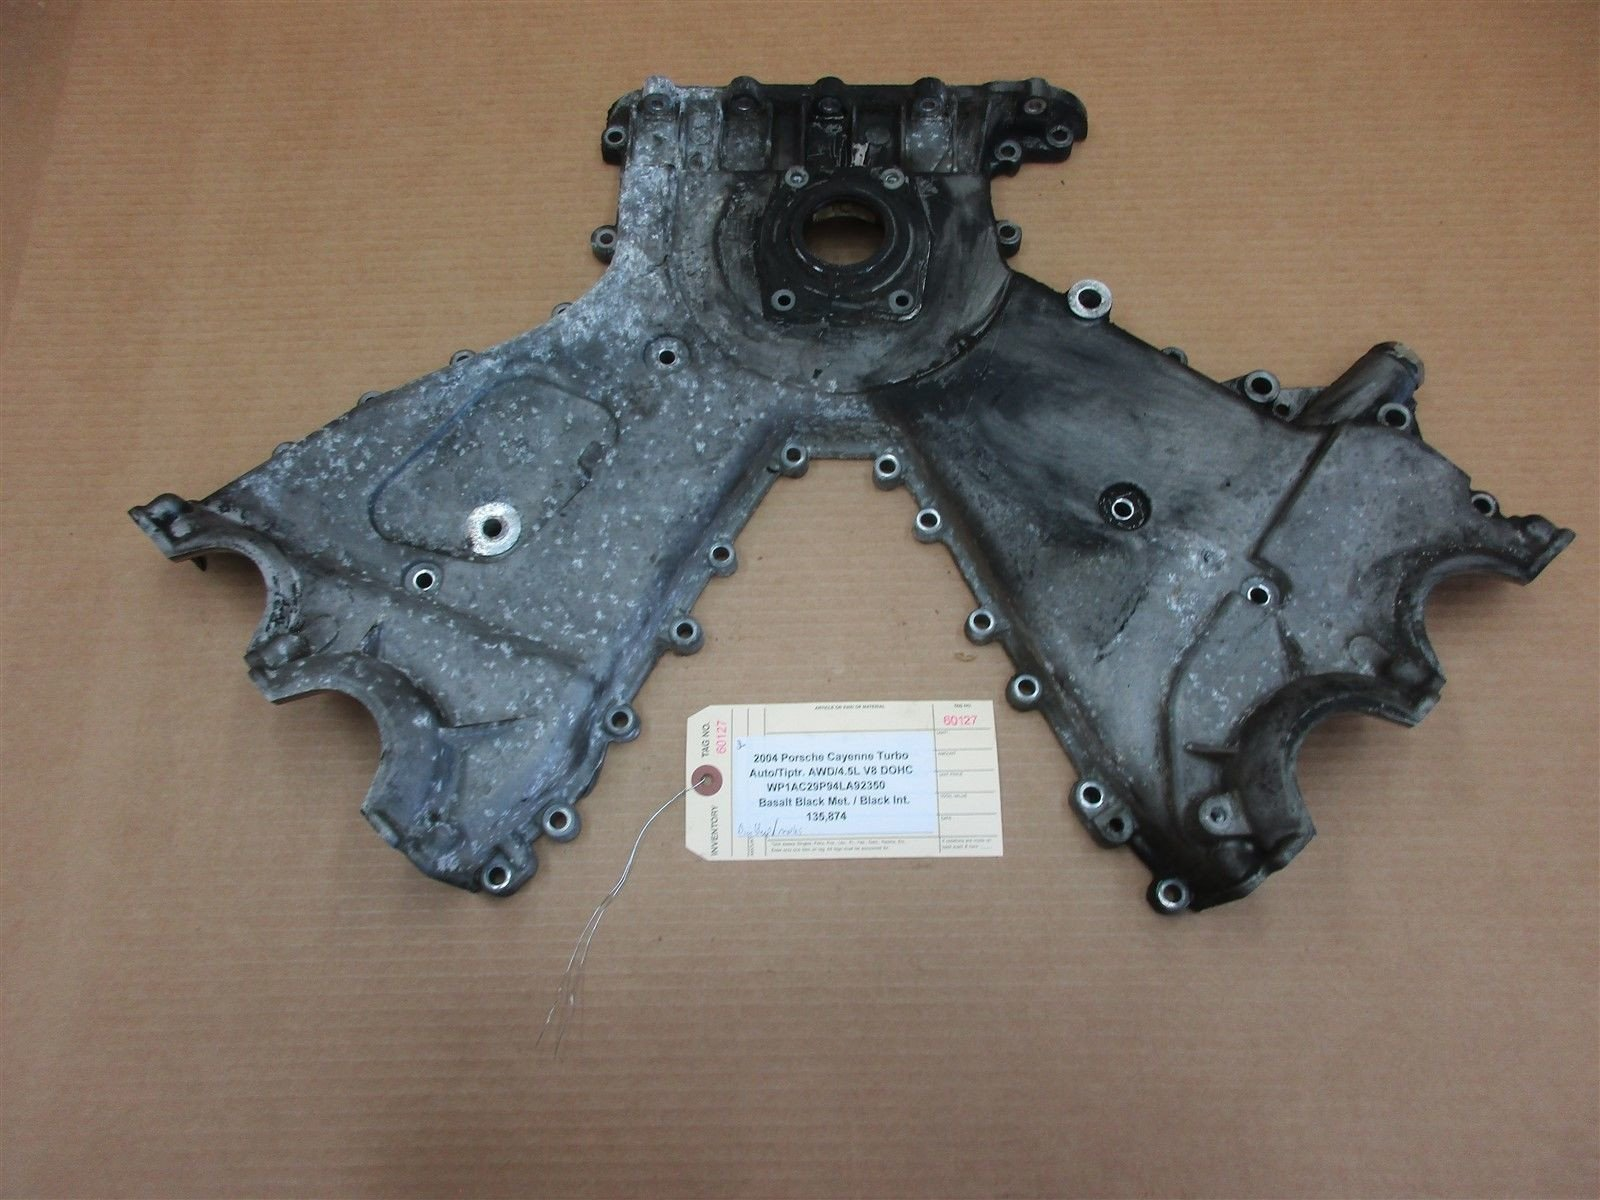 04 Cayenne Turbo Porsche 955 Engine 4.5 TIMING CHAIN COVER 9481011217R 135,874